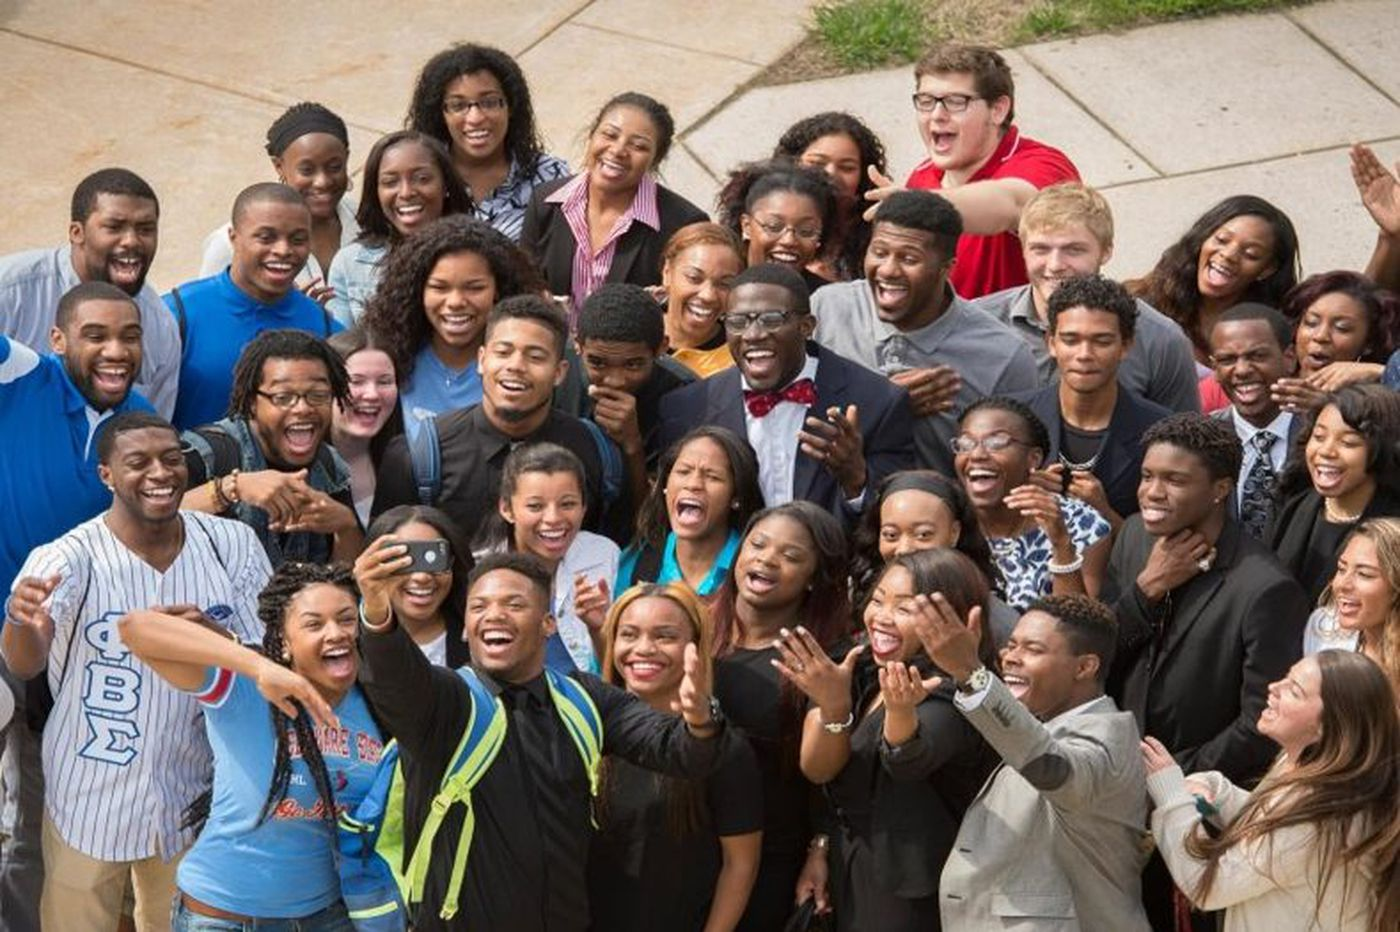 Delaware State, historically African American, bucks the trend for many colleges by attracting more students